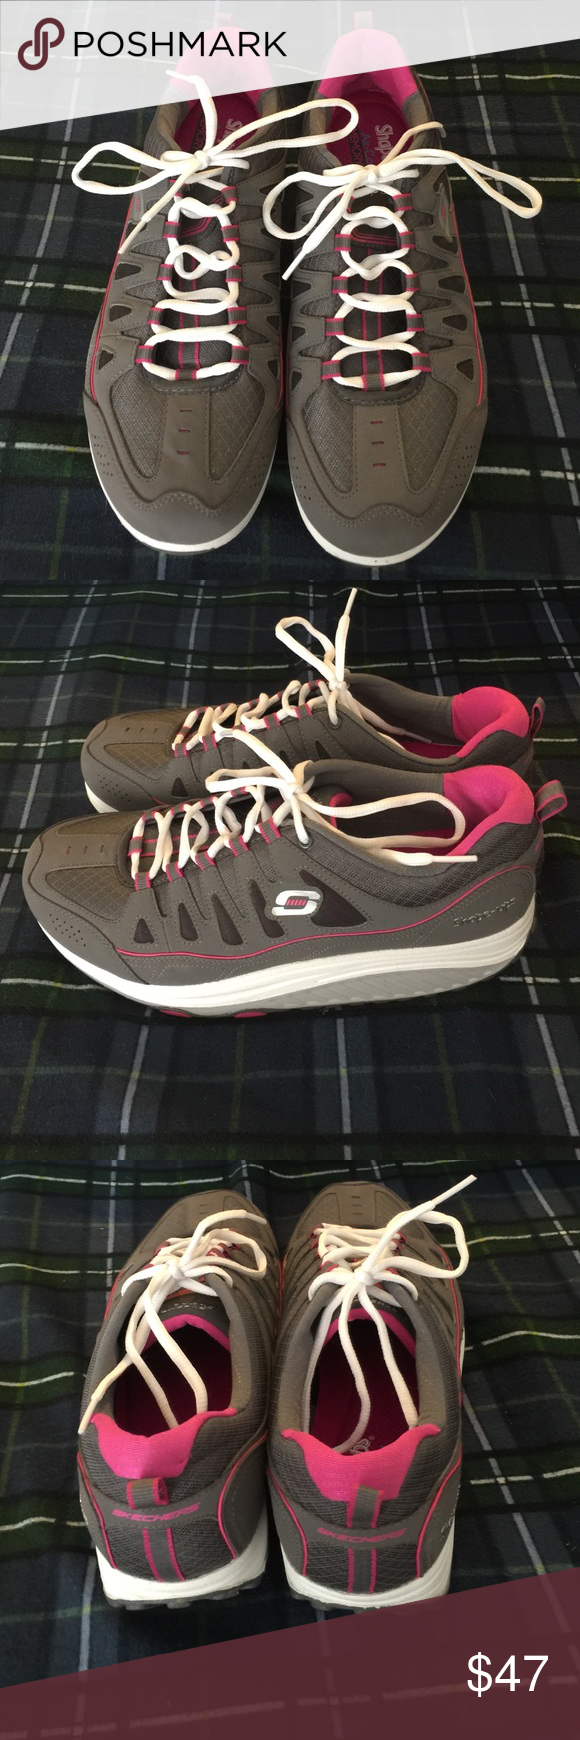 Skechers Shape-ups Charcoal and Pink LIKE NEW!! They are in like new condition. Size 11. Hard to find in this size and color. They are air cooled with Memory Foam. Can't bundle with these please. Already at the weight maximum. Skechers Shoes Athletic Shoes